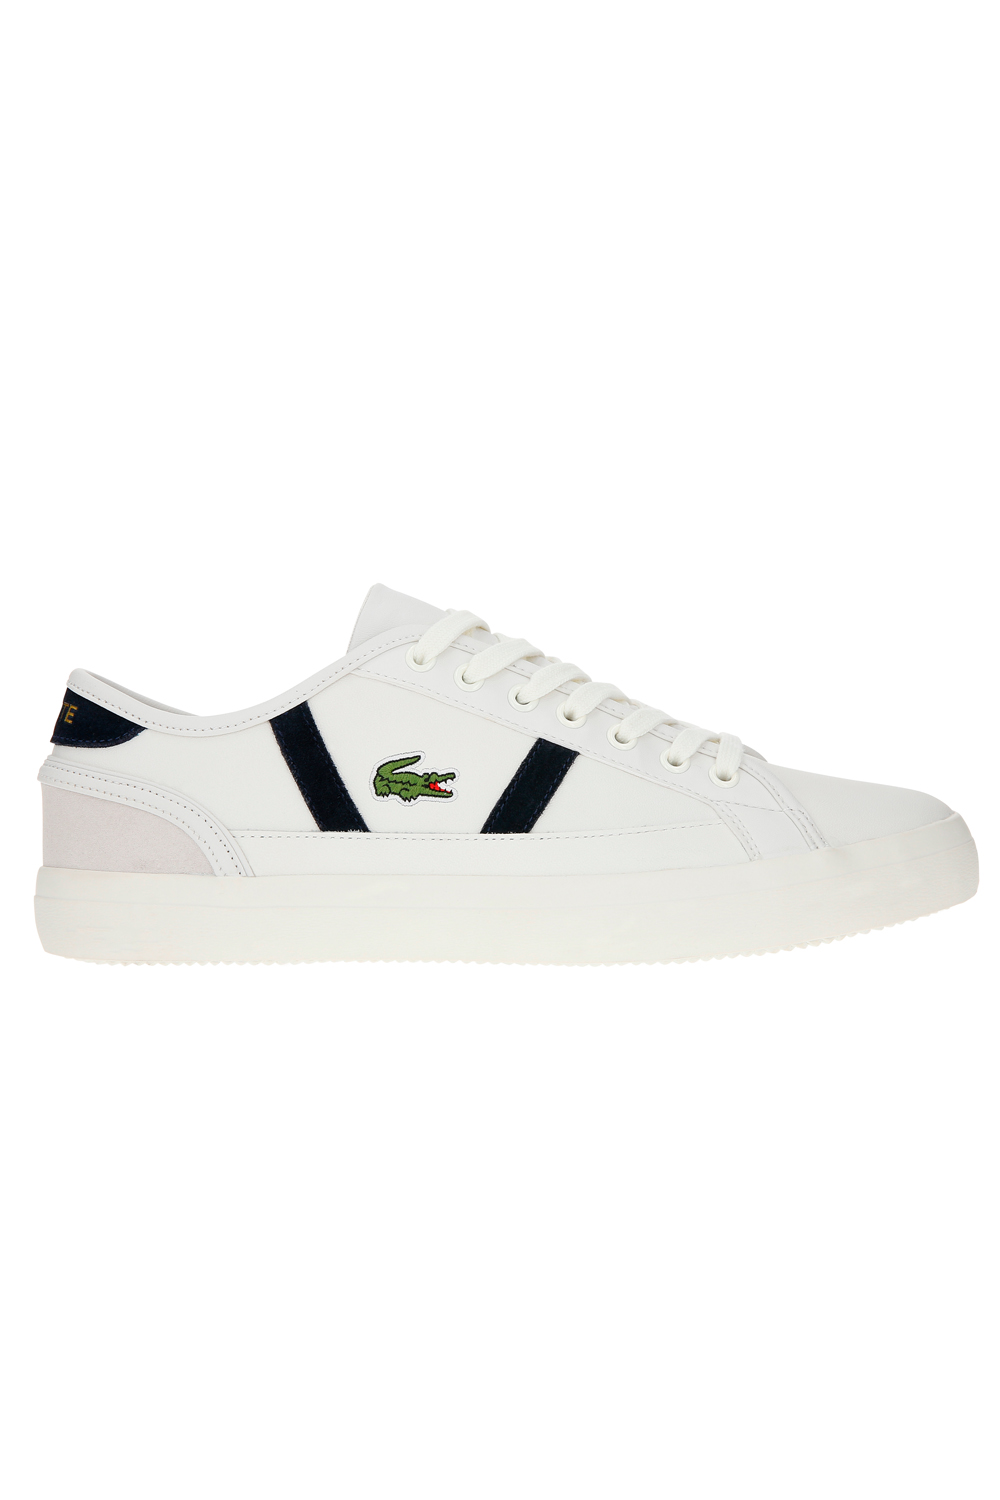 Lacoste-Mens-Sideline-119-Lace-Ups-Leather-Canvas-White-Trainers-Casual-Shoes thumbnail 8